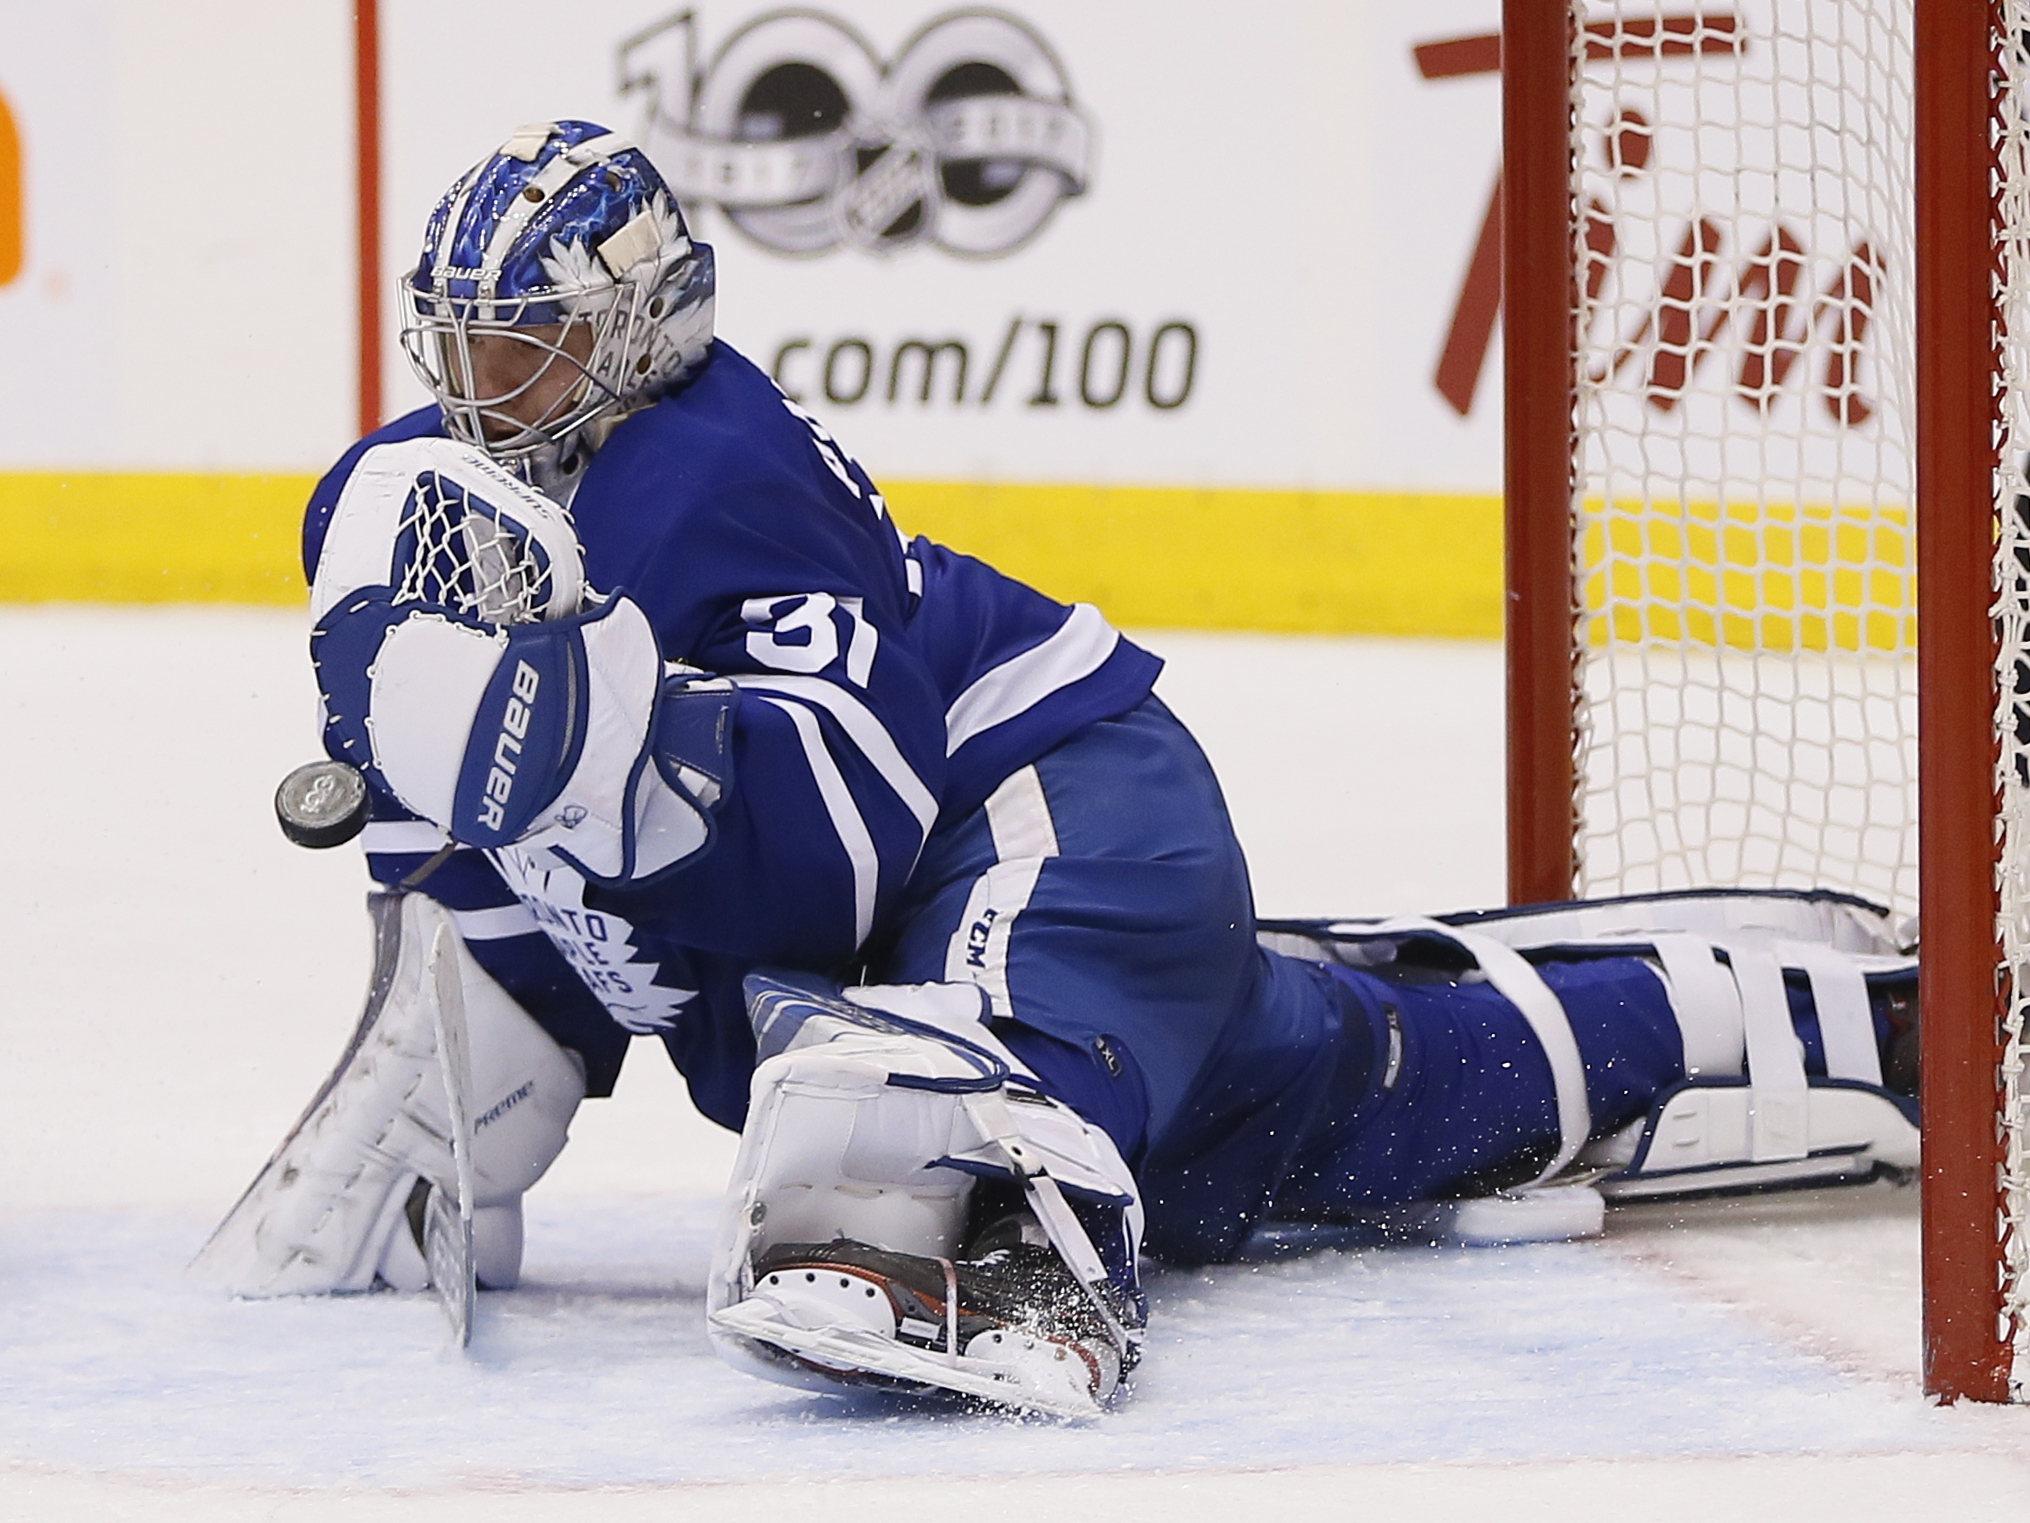 9961046-nhl-boston-bruins-at-toronto-maple-leafs